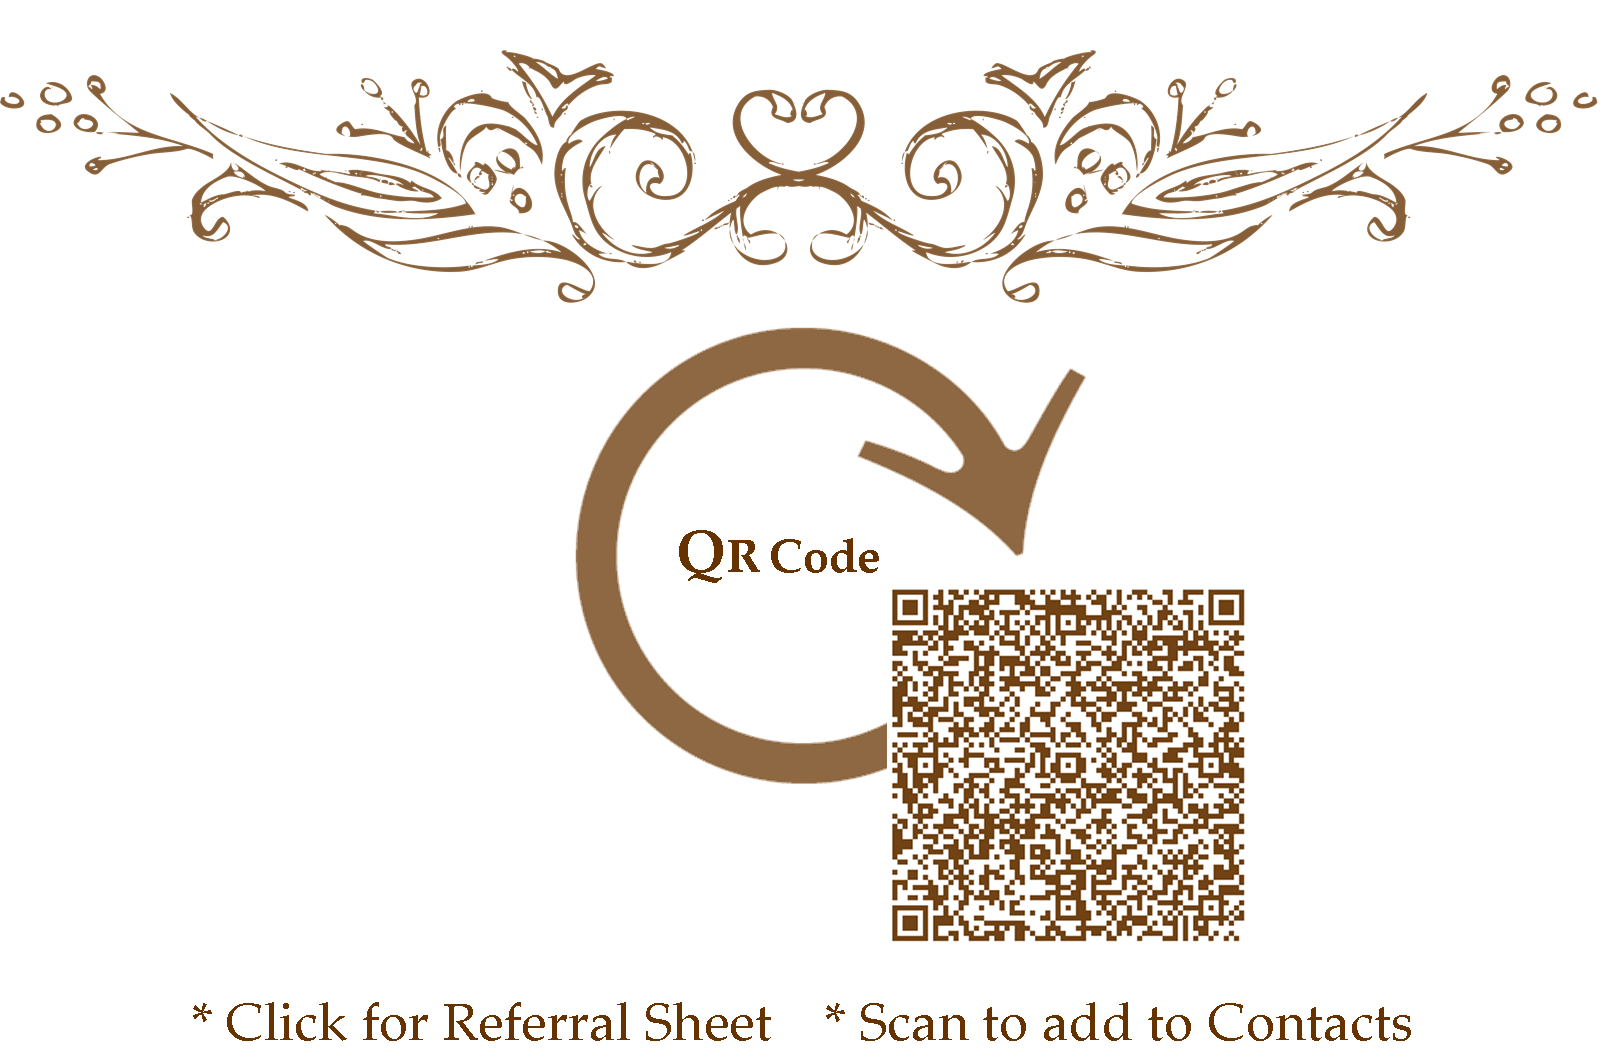 QR Code Vcard Scan Wyatt Rehabiliation Wyatt Rehabilitation Physical Therapy and Lymphedema, Venous Edema, Wound Care, Breast Cancer Rehabilitation Lymphedema Treatment